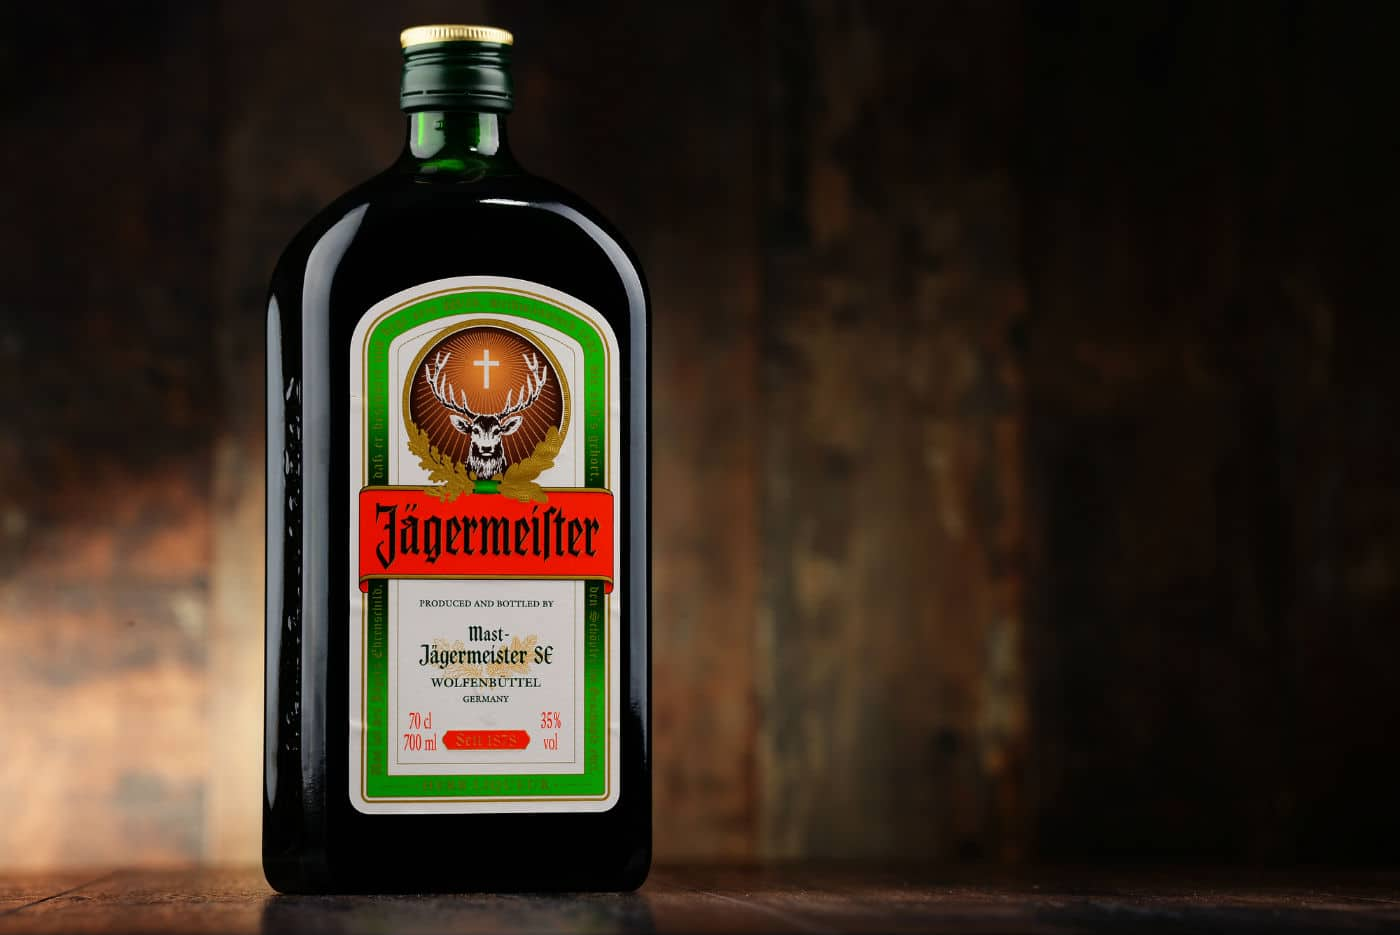 Fake Jagermeister served on tap at English pub